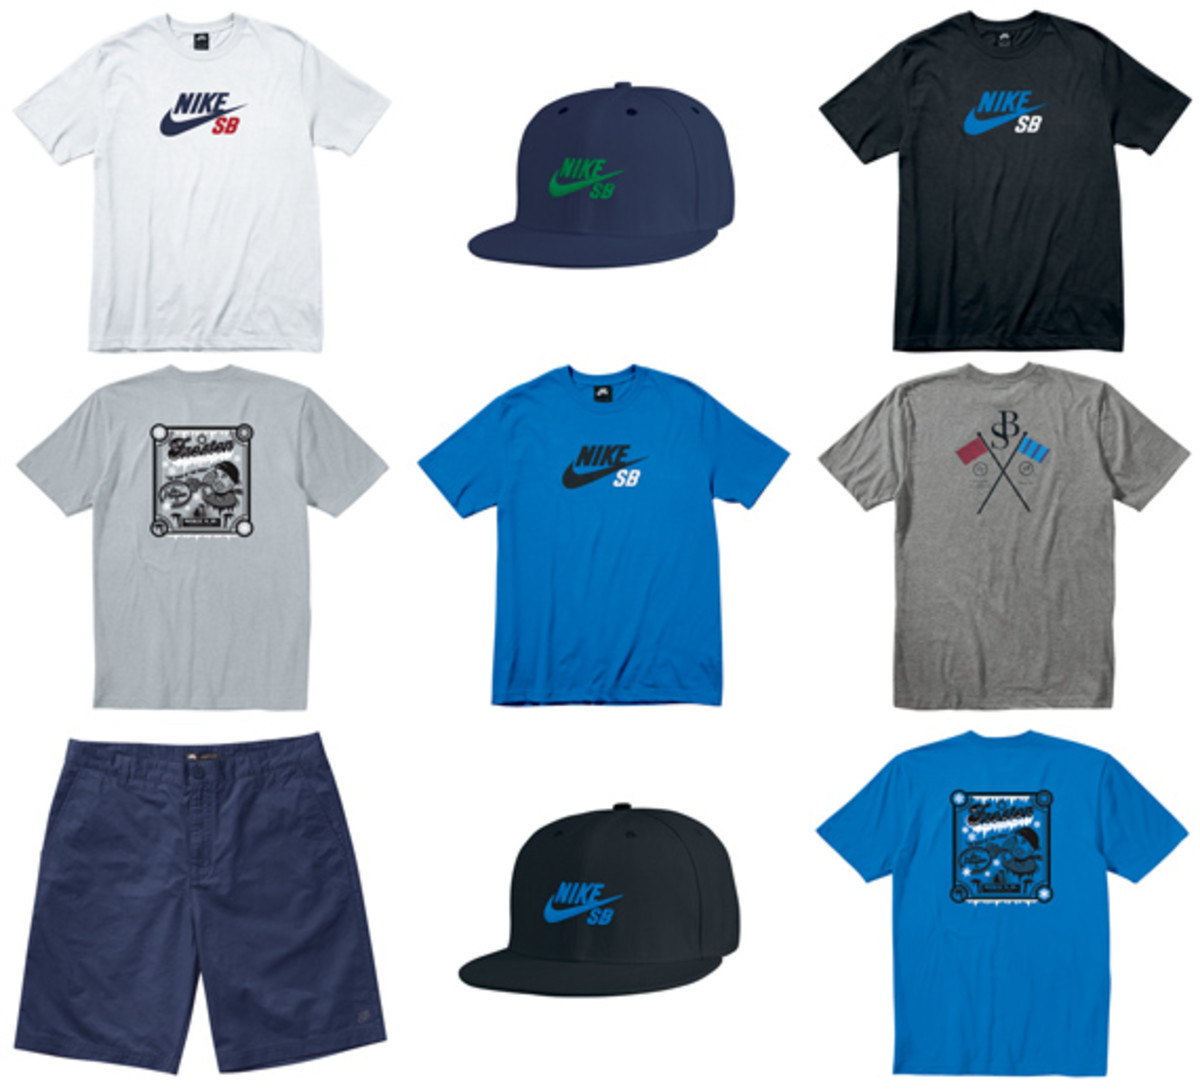 nike-sb-may-2011-apparel-accessories